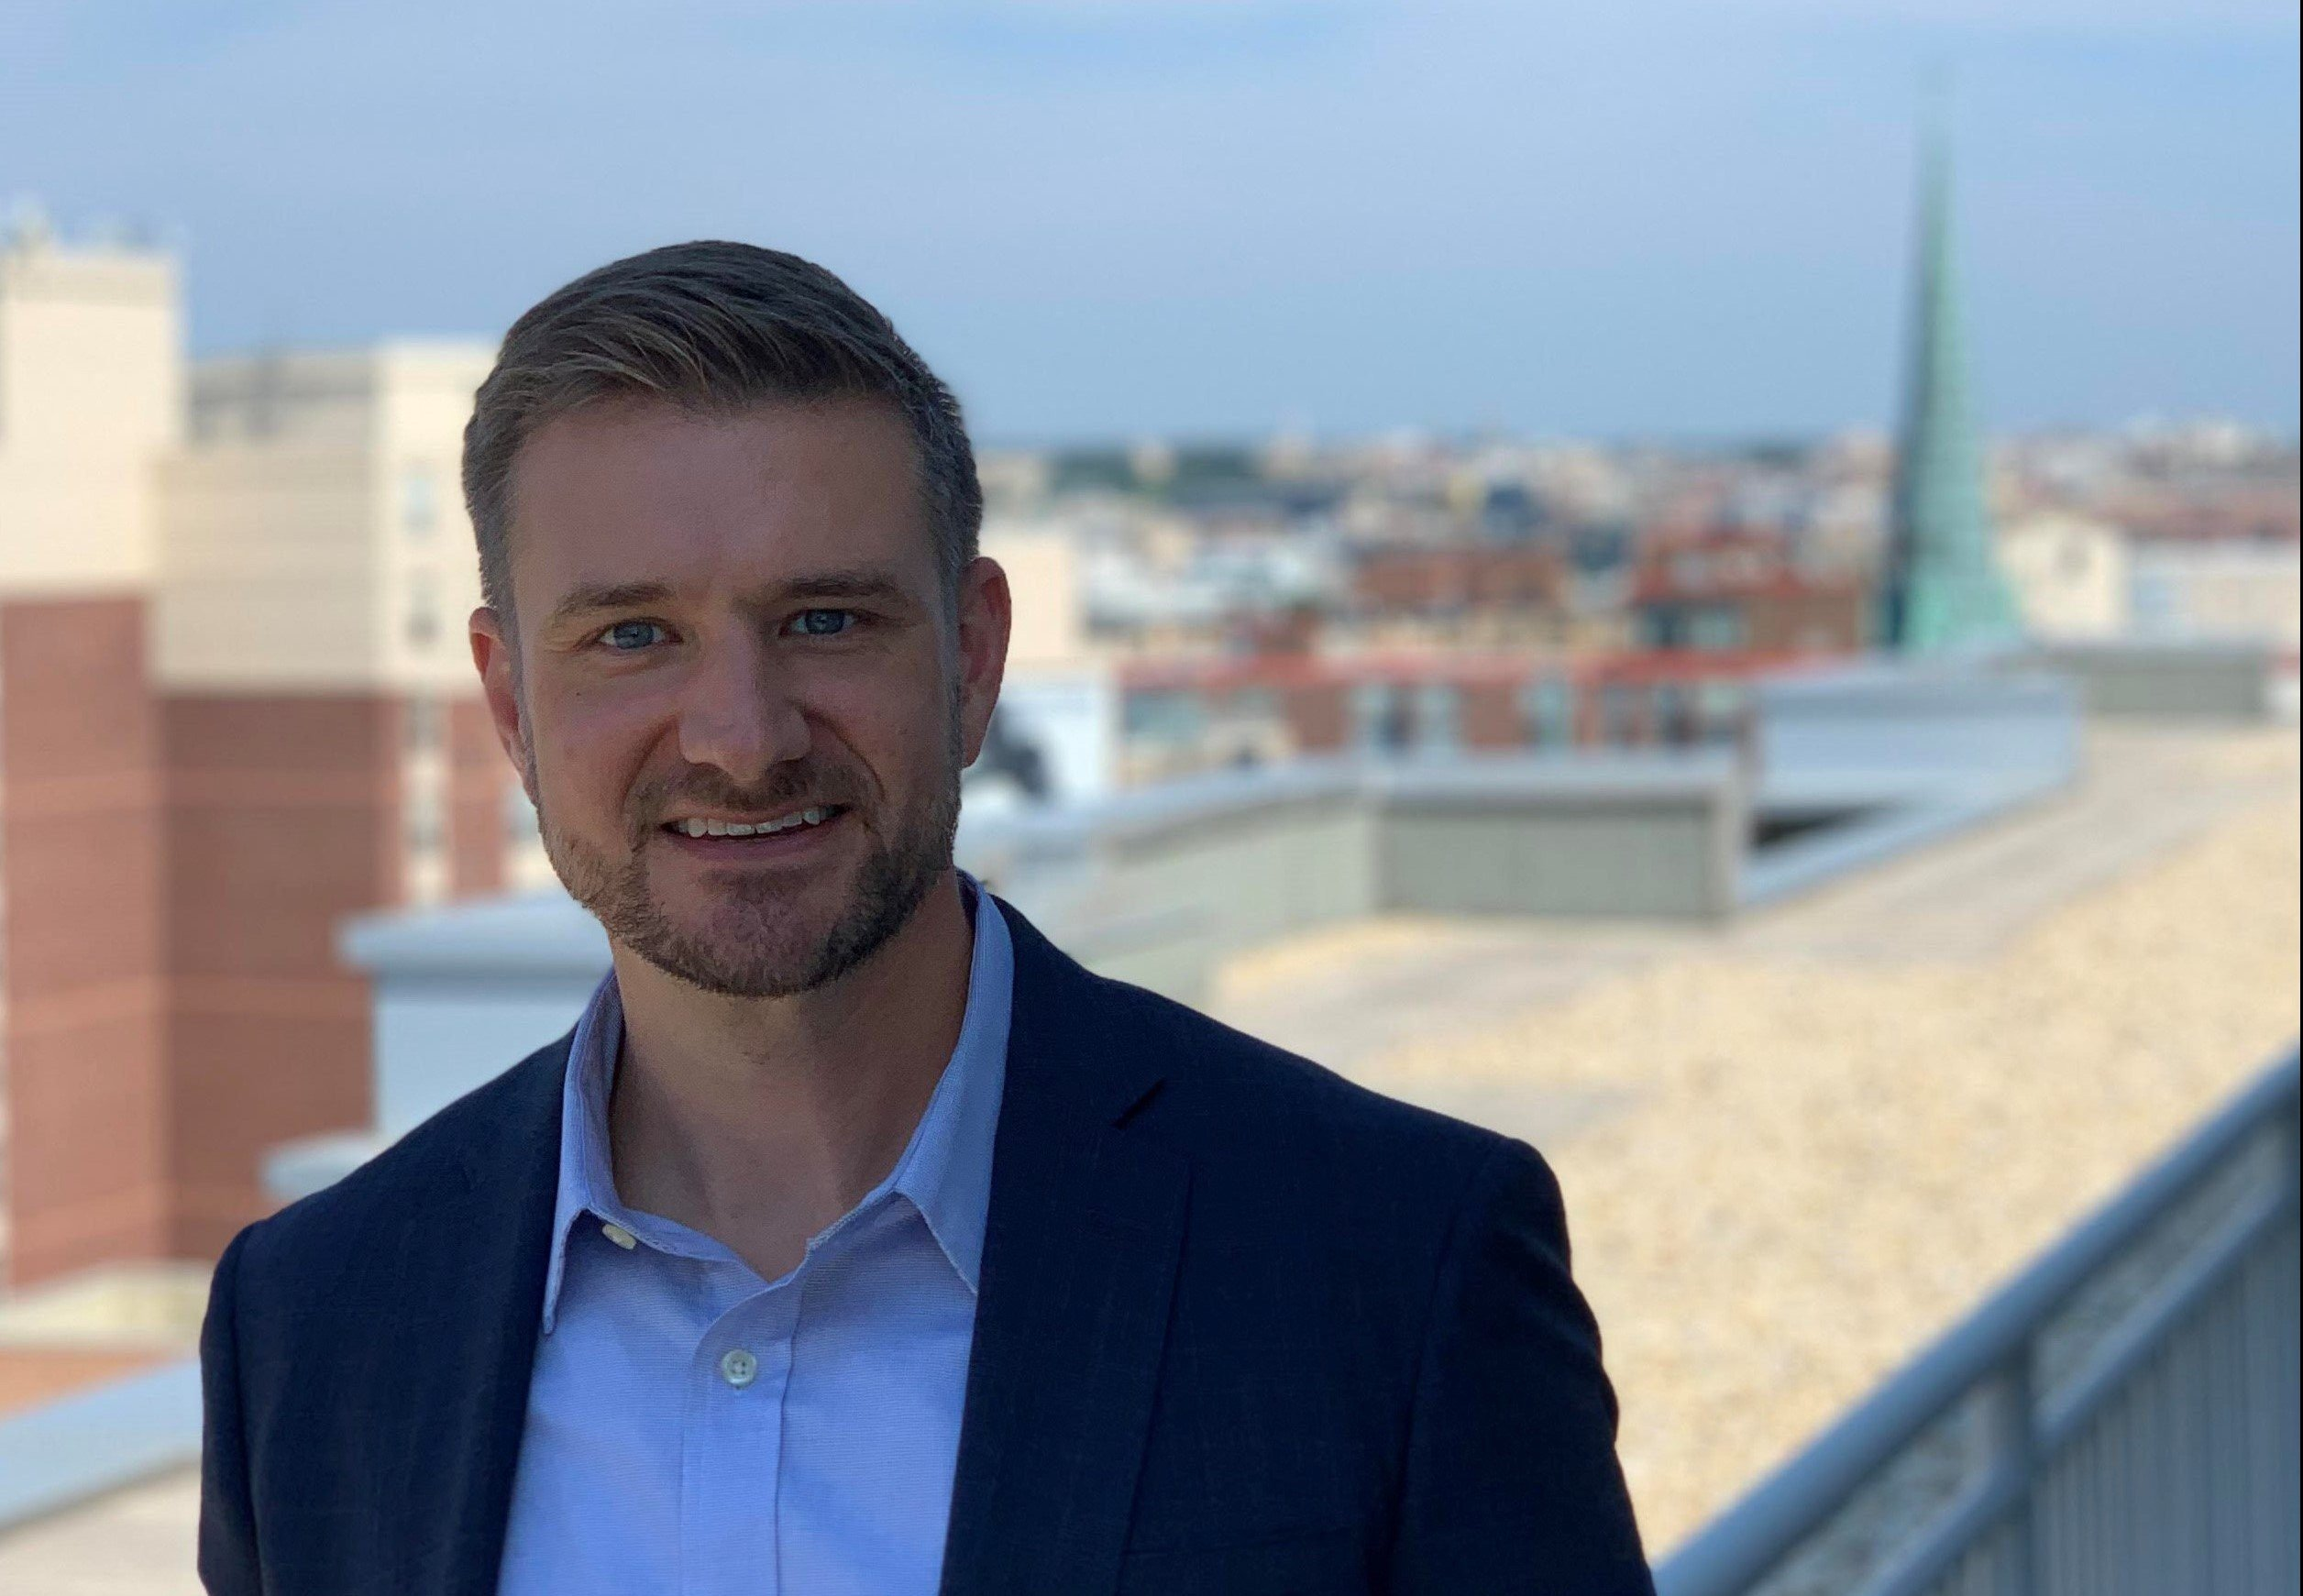 Meet Ryan Noll – Our New Chief People Officer